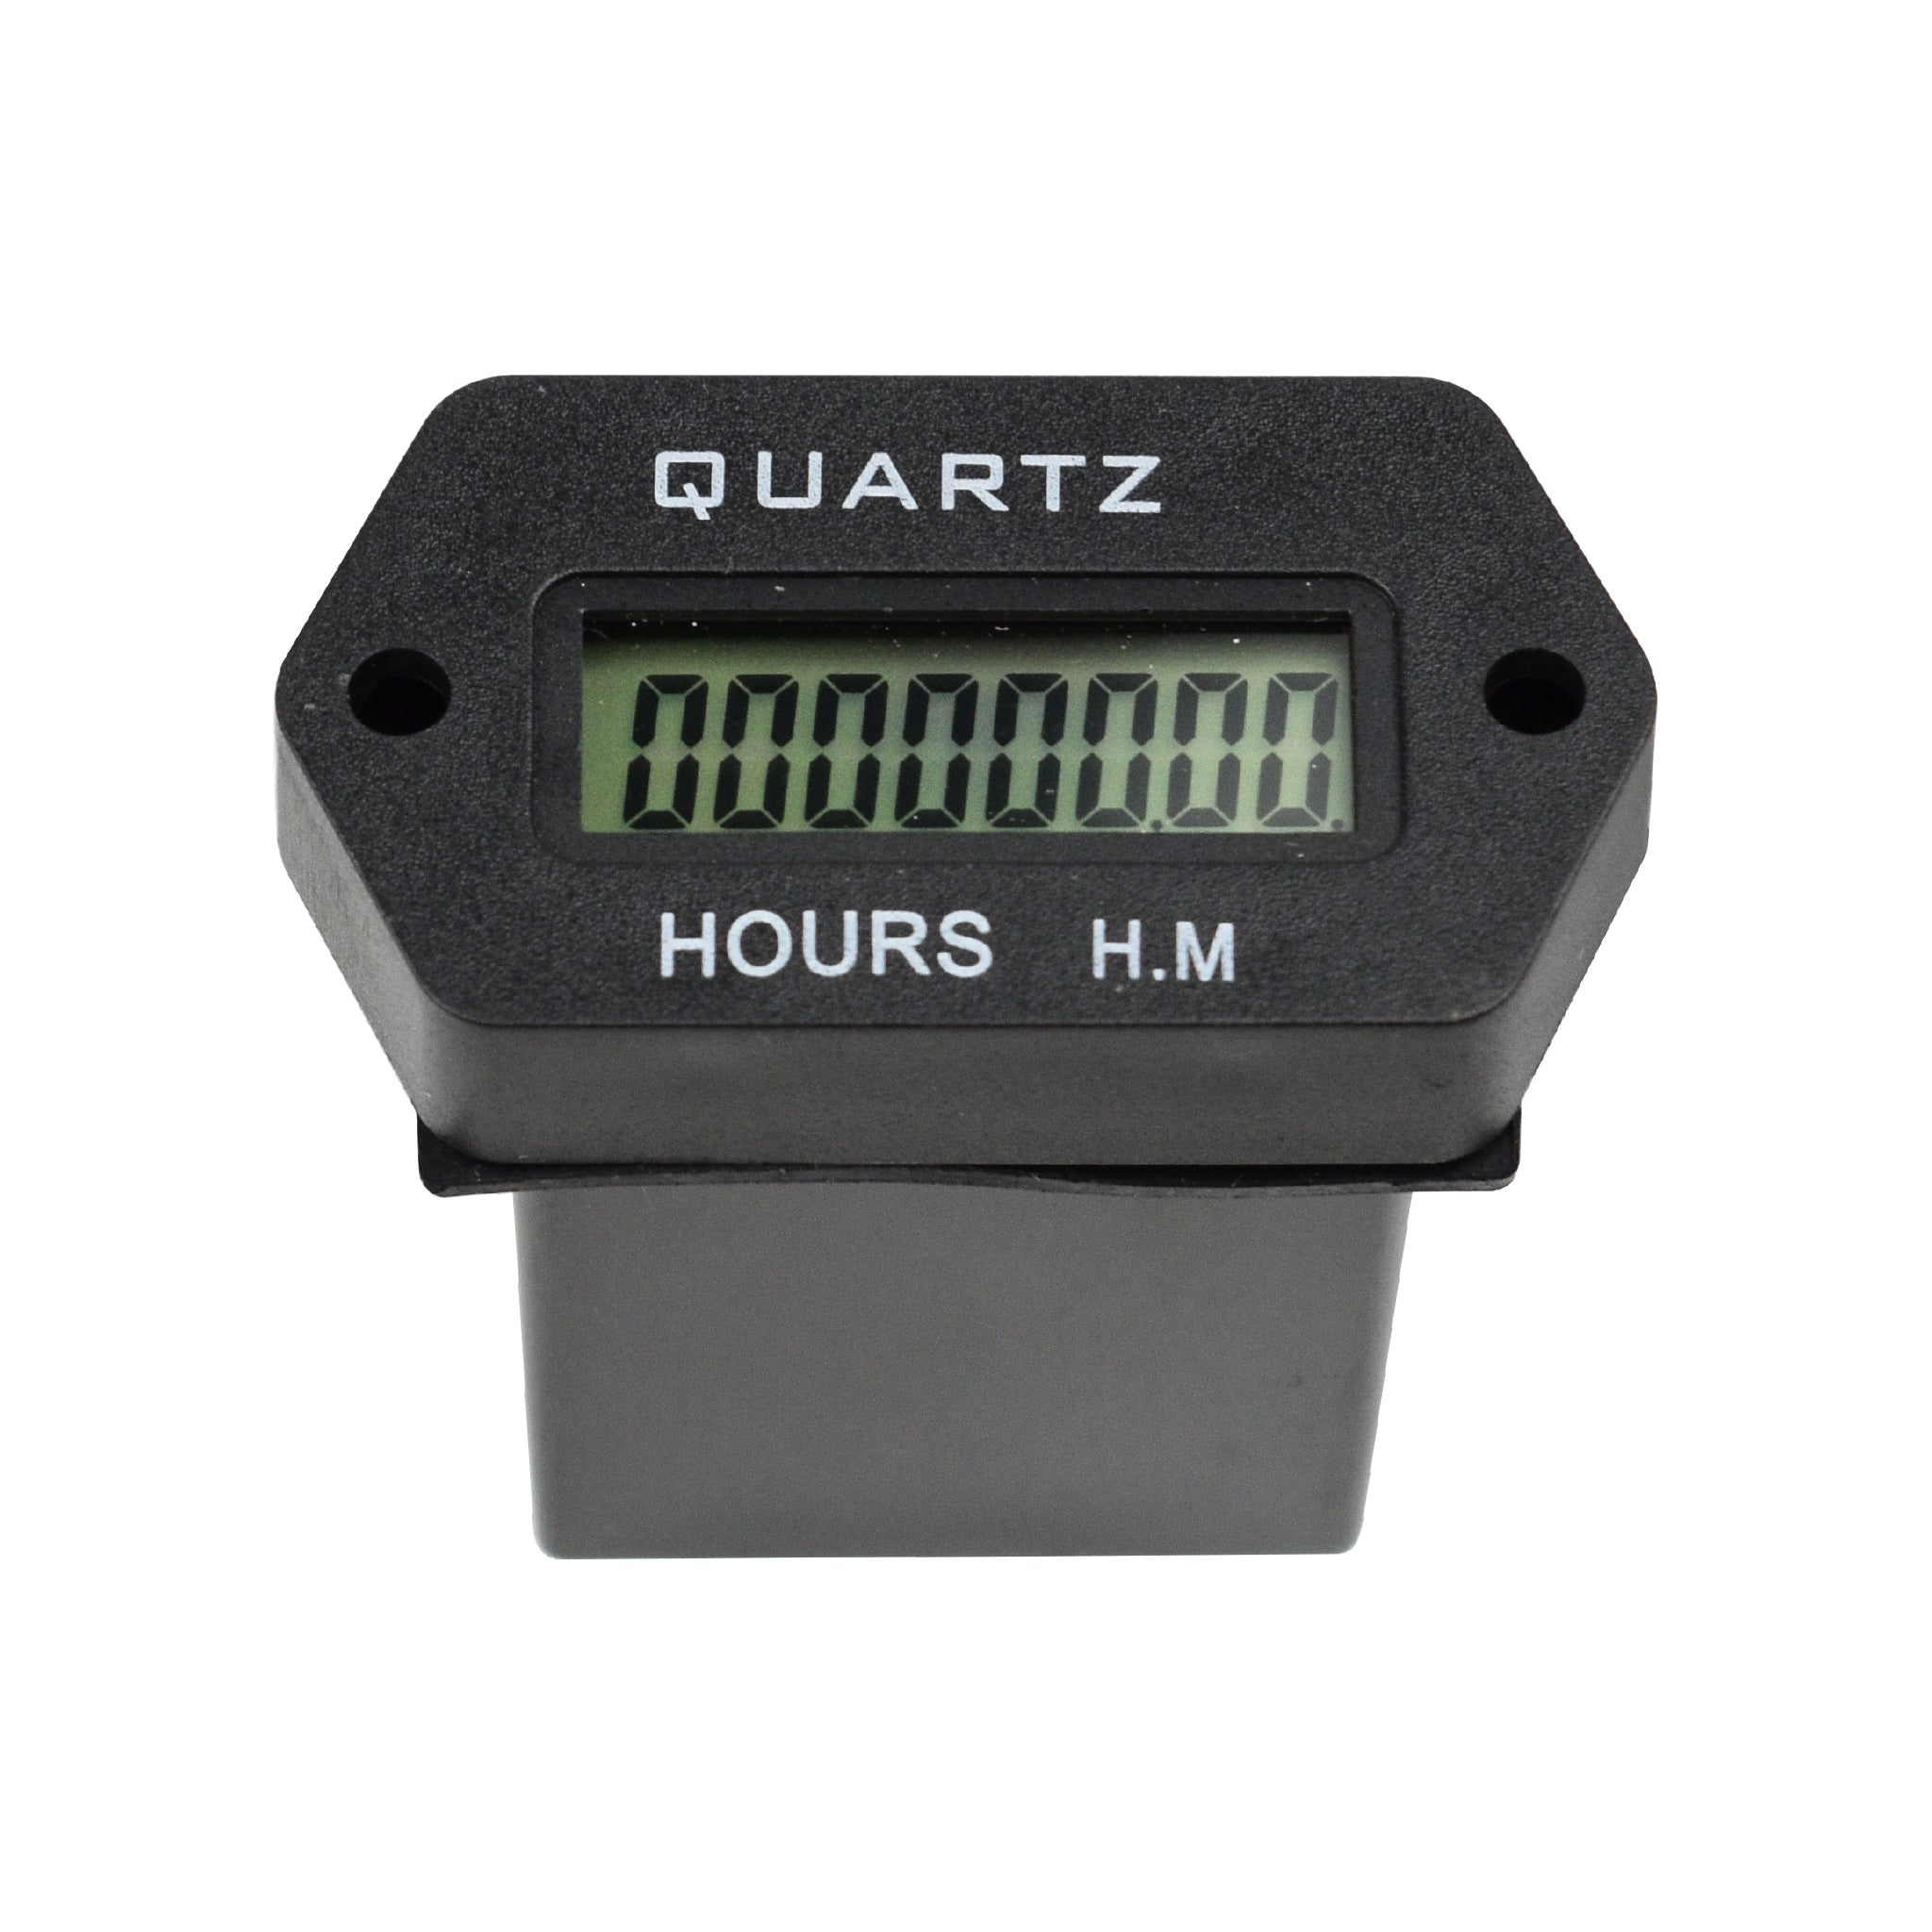 Replacement Hour Meter for UVC PureLight 360 Smart Sanitizer